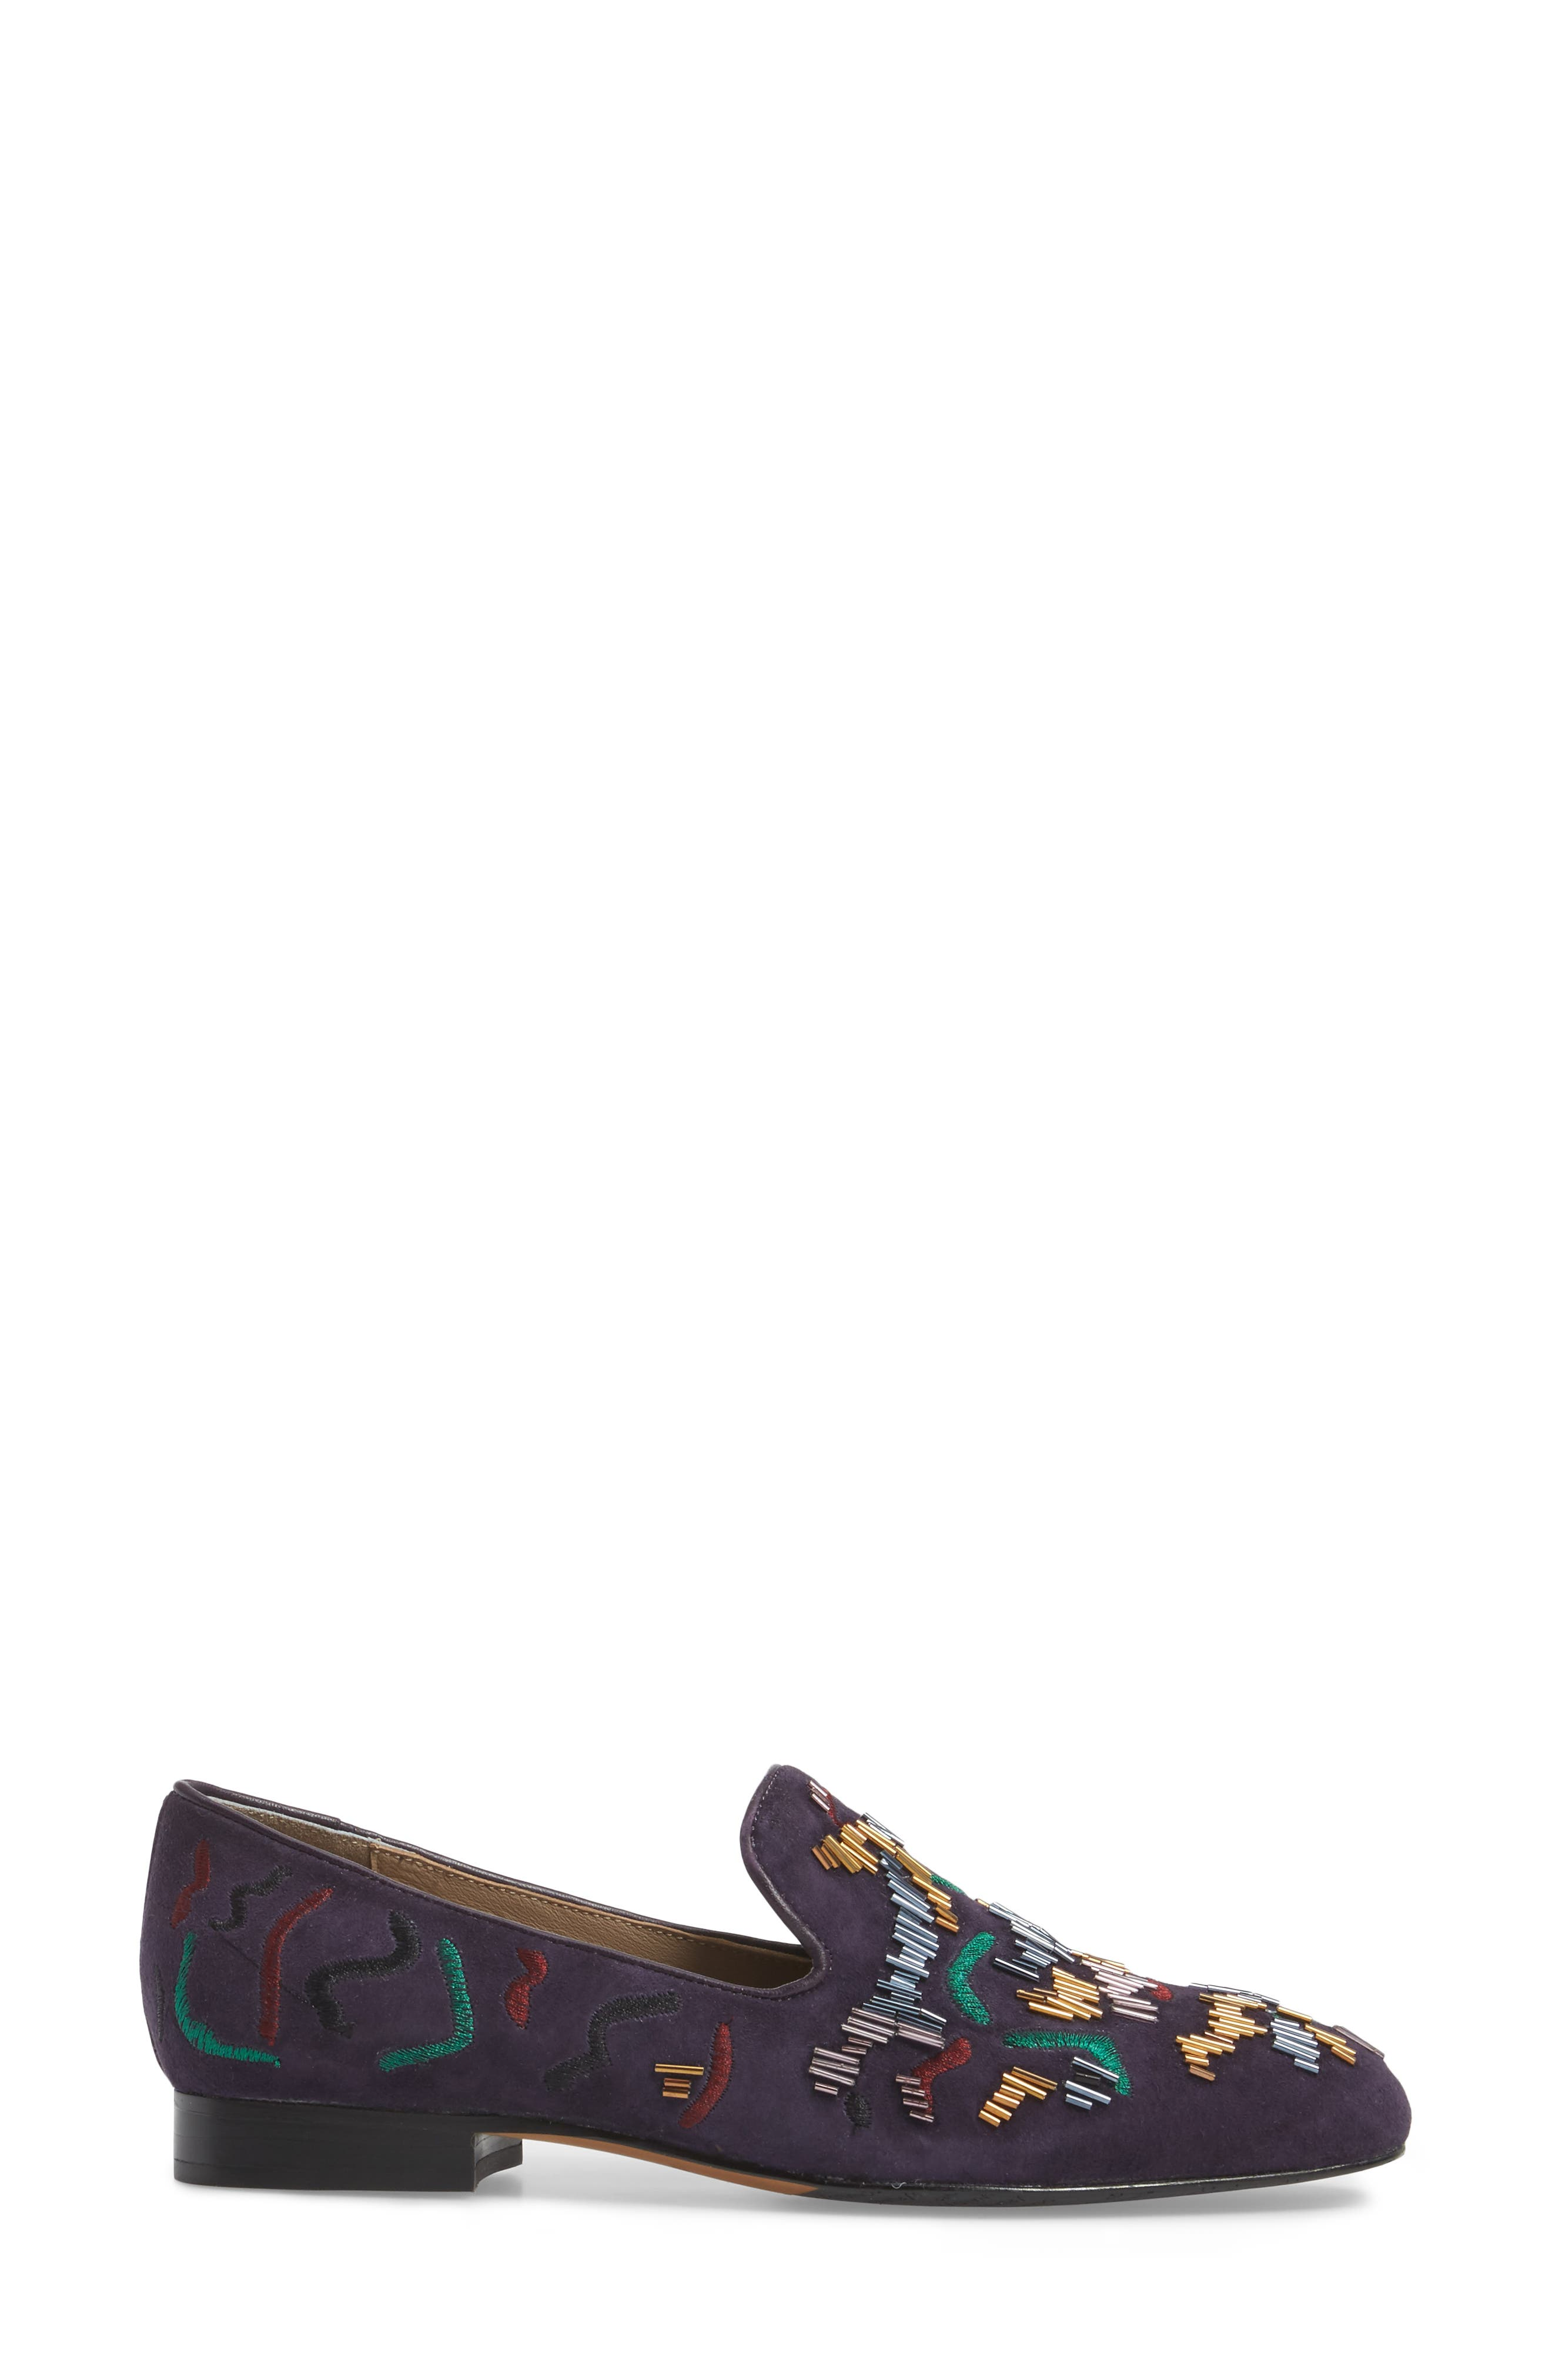 Leanne Beaded Loafer,                             Alternate thumbnail 3, color,                             654